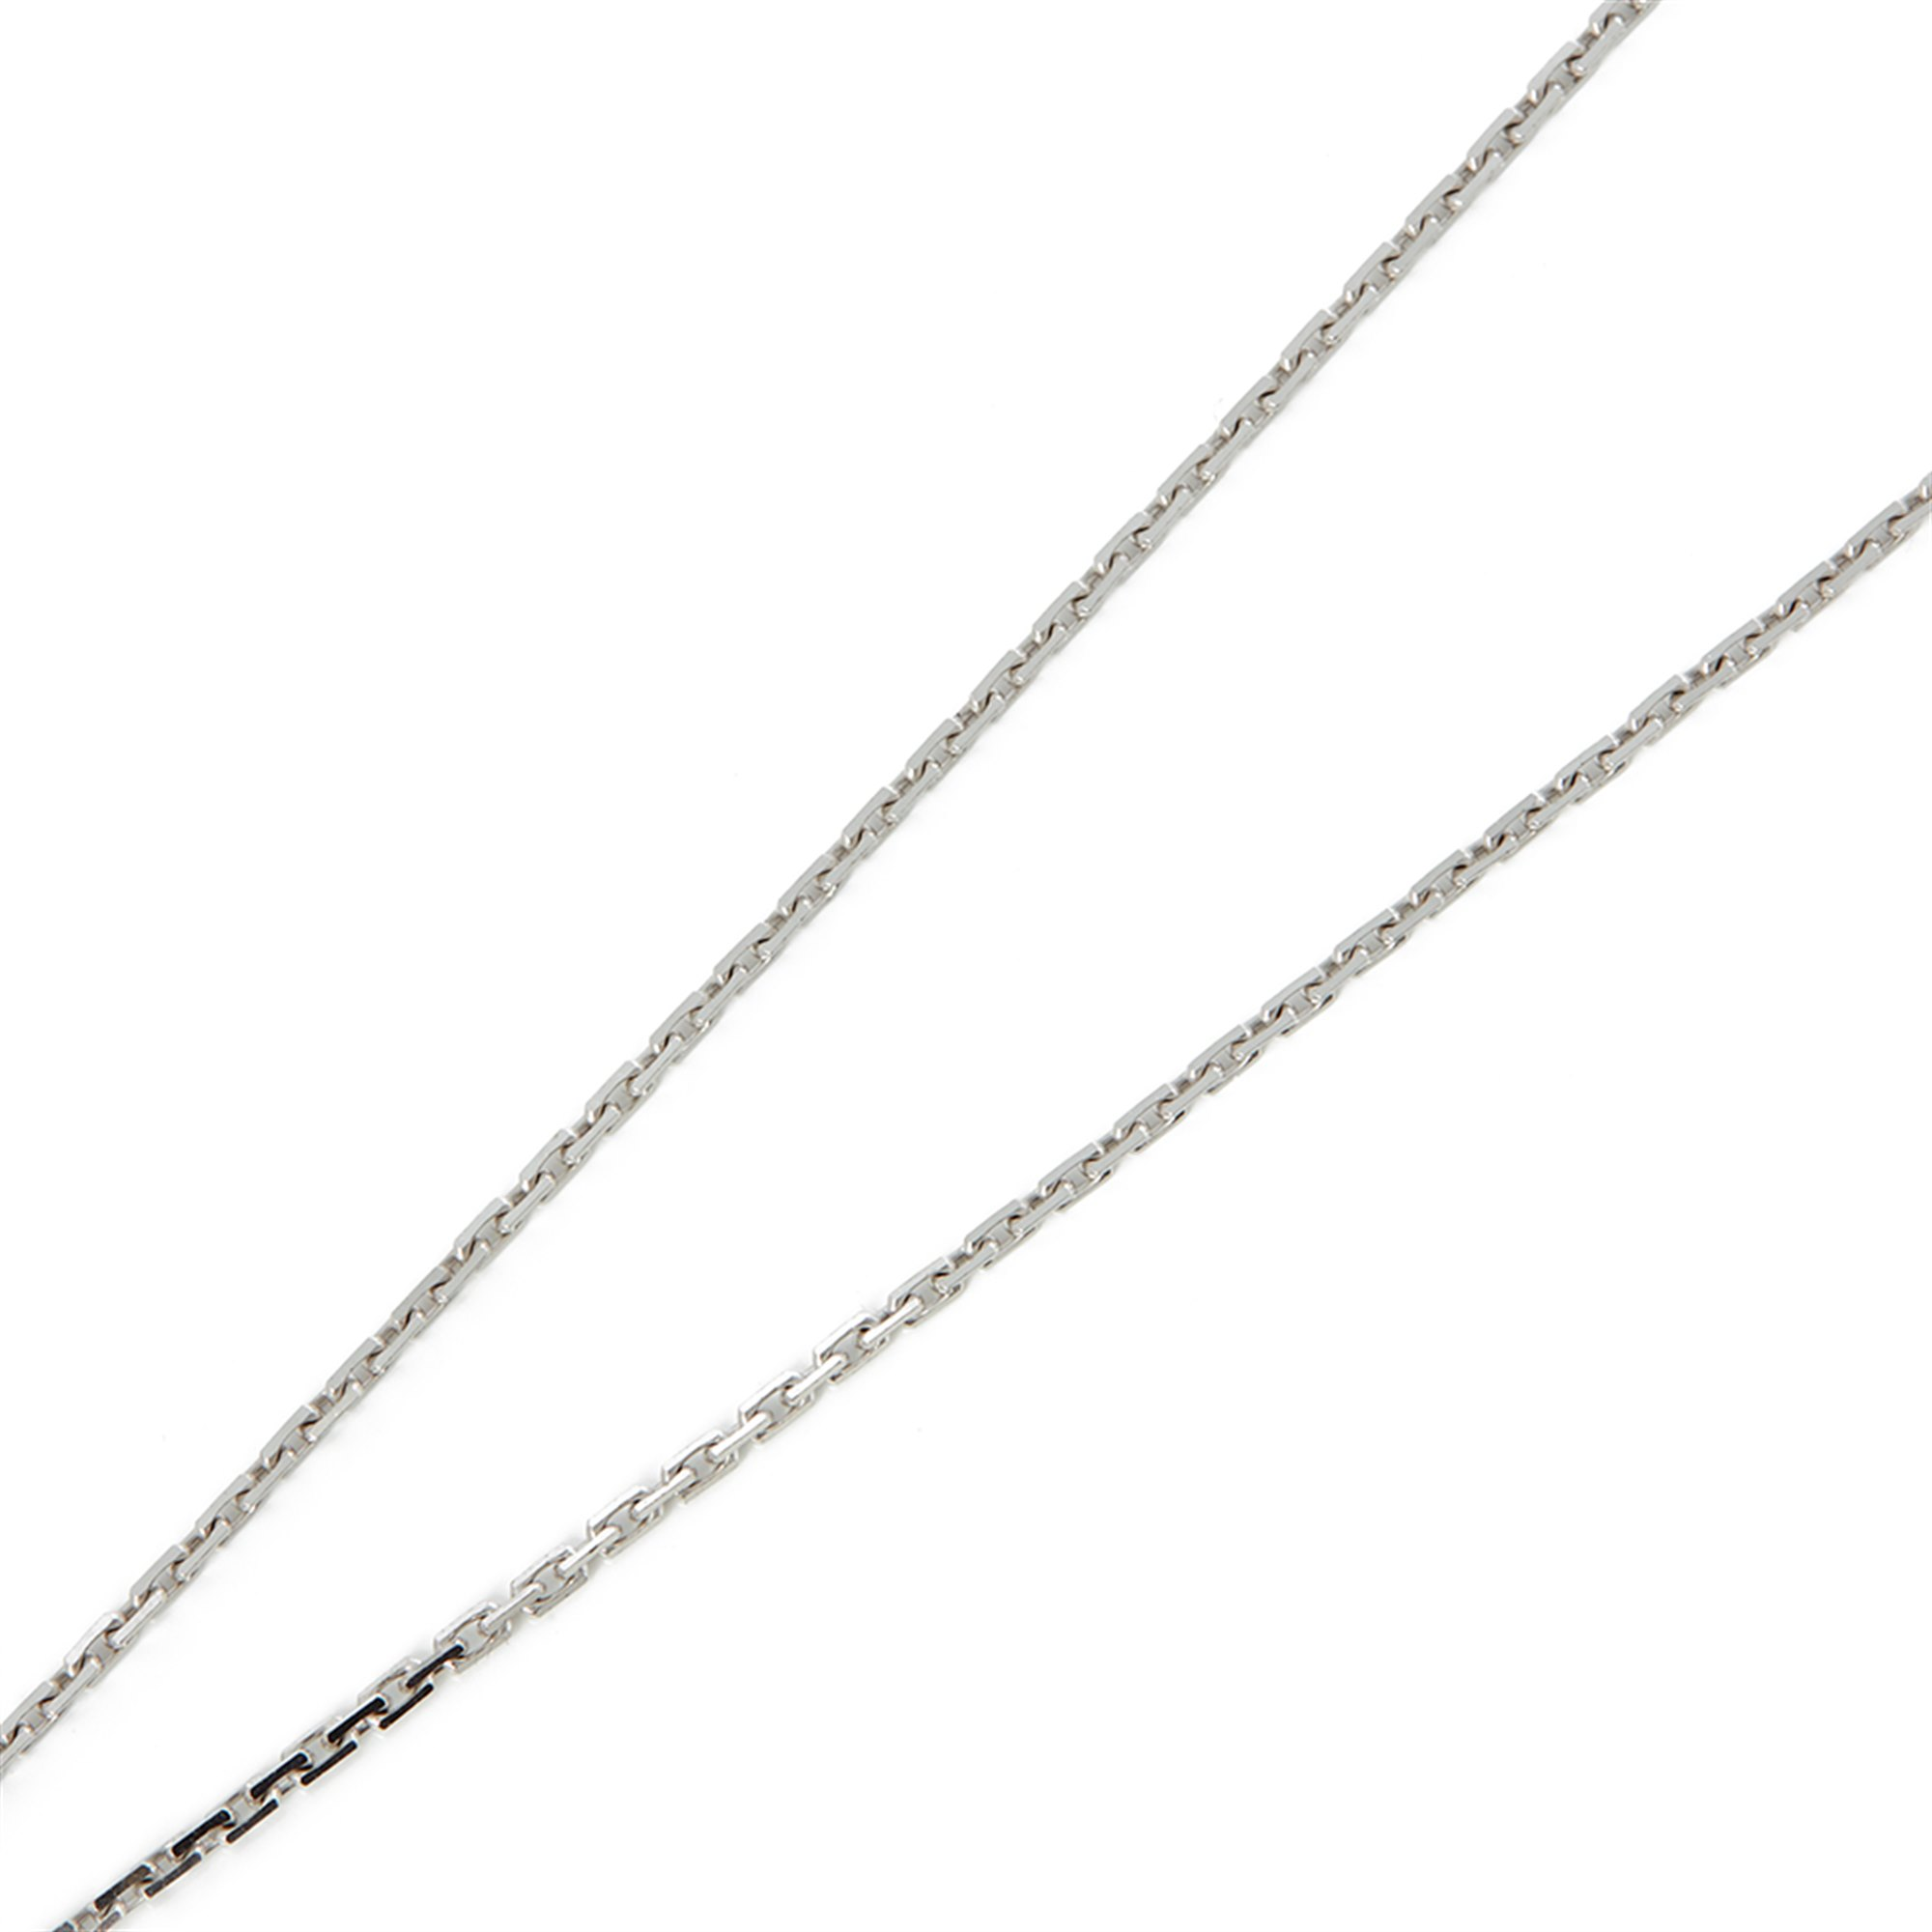 Cartier 18k White Gold Diamond Love Pendant Necklace